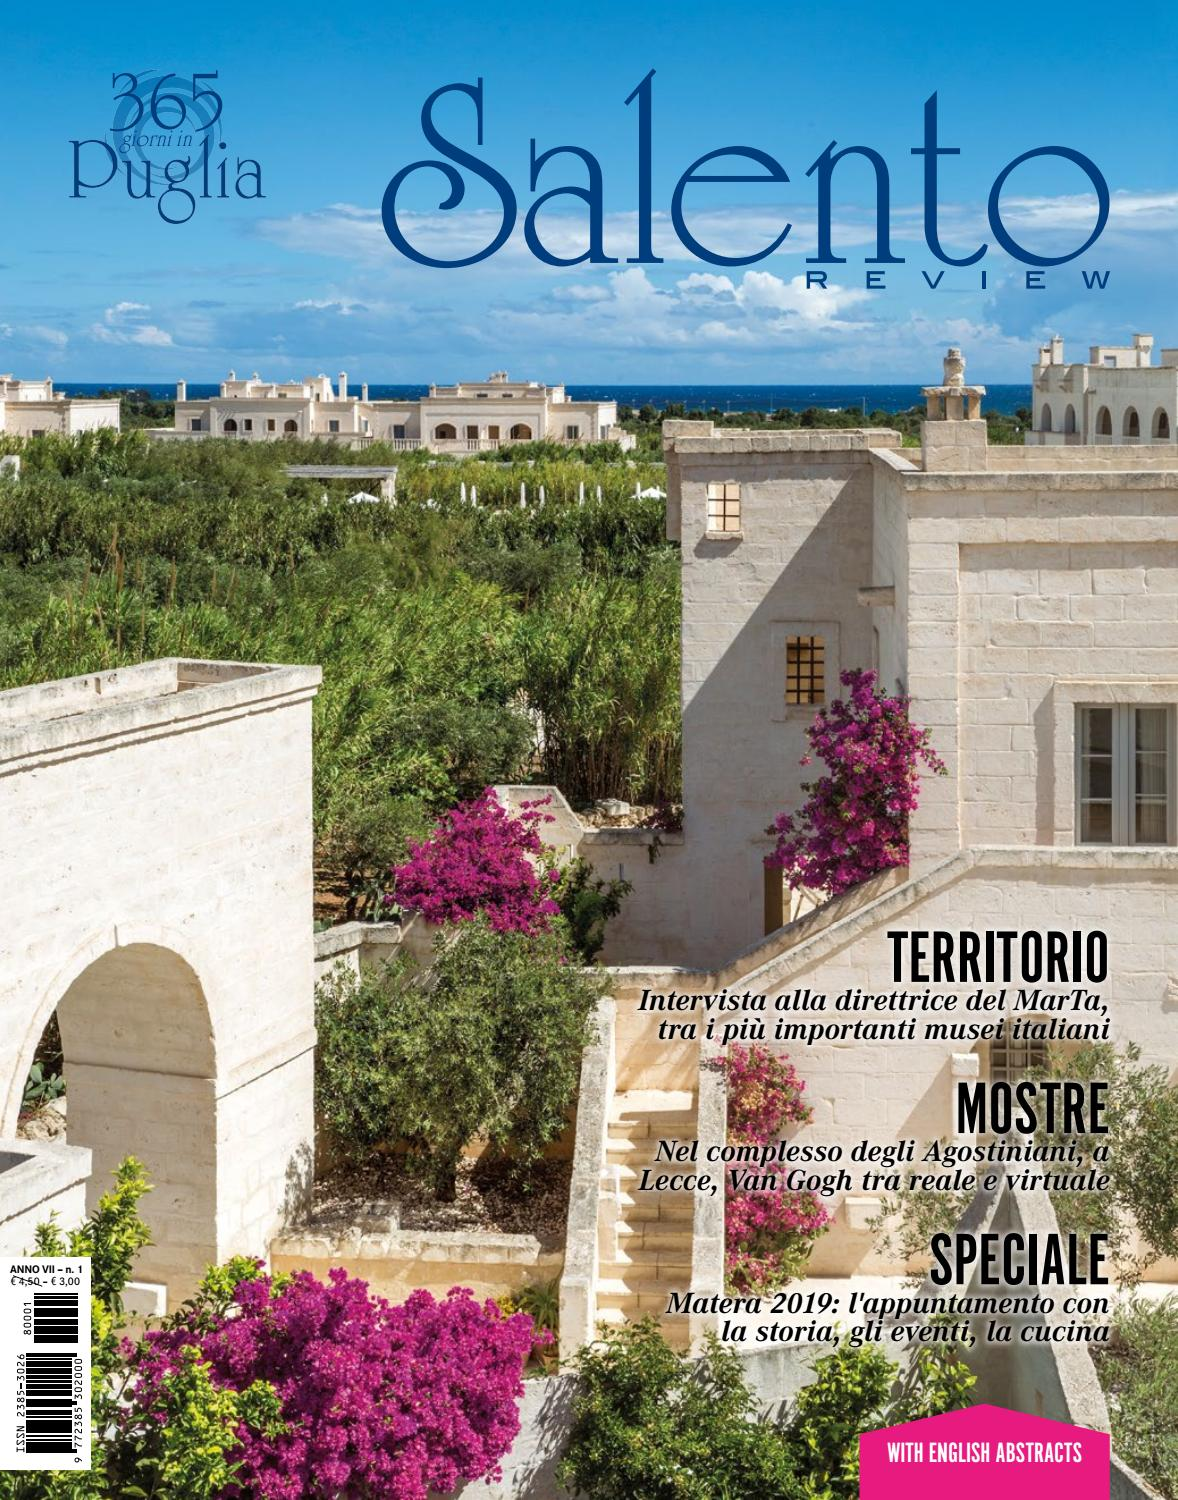 Cucina Fresca Meaning Salento Review Anno Vii Numero Uno By Salento Review Issuu